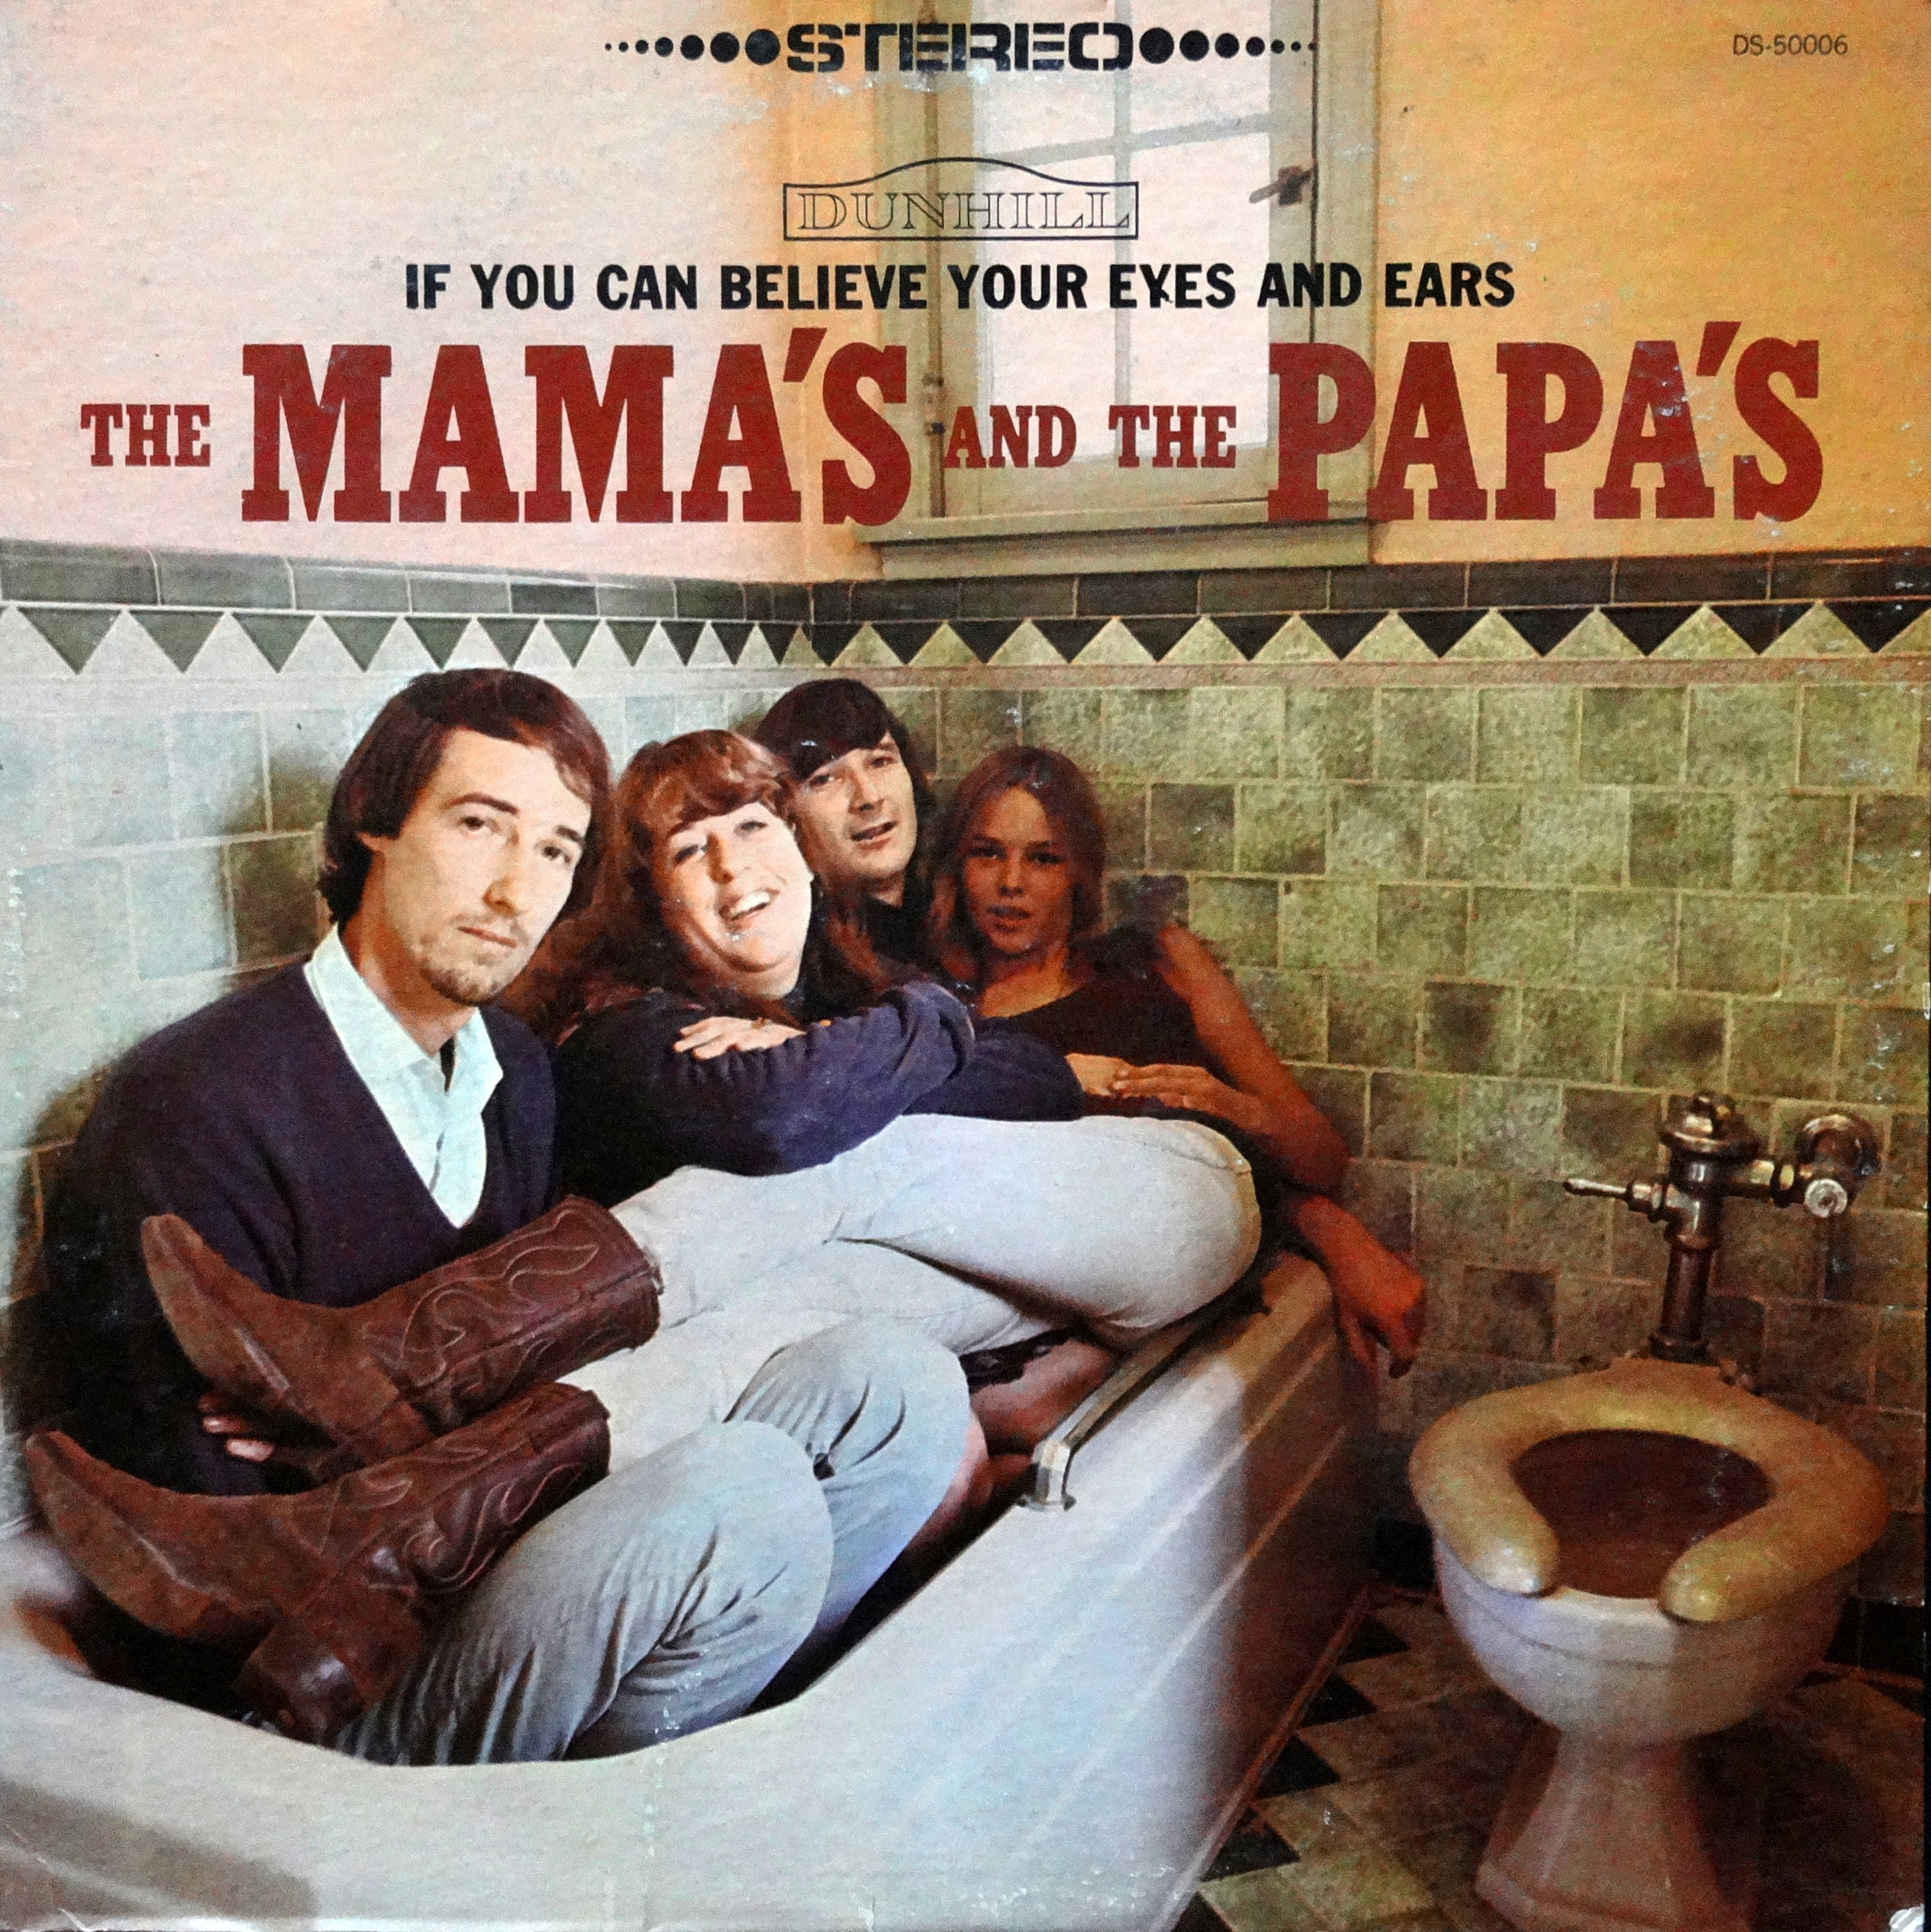 From The Stacks: The Mama's and the Papa's, 'If You Can Believe Your Eyes and Ears' – Why It Matters